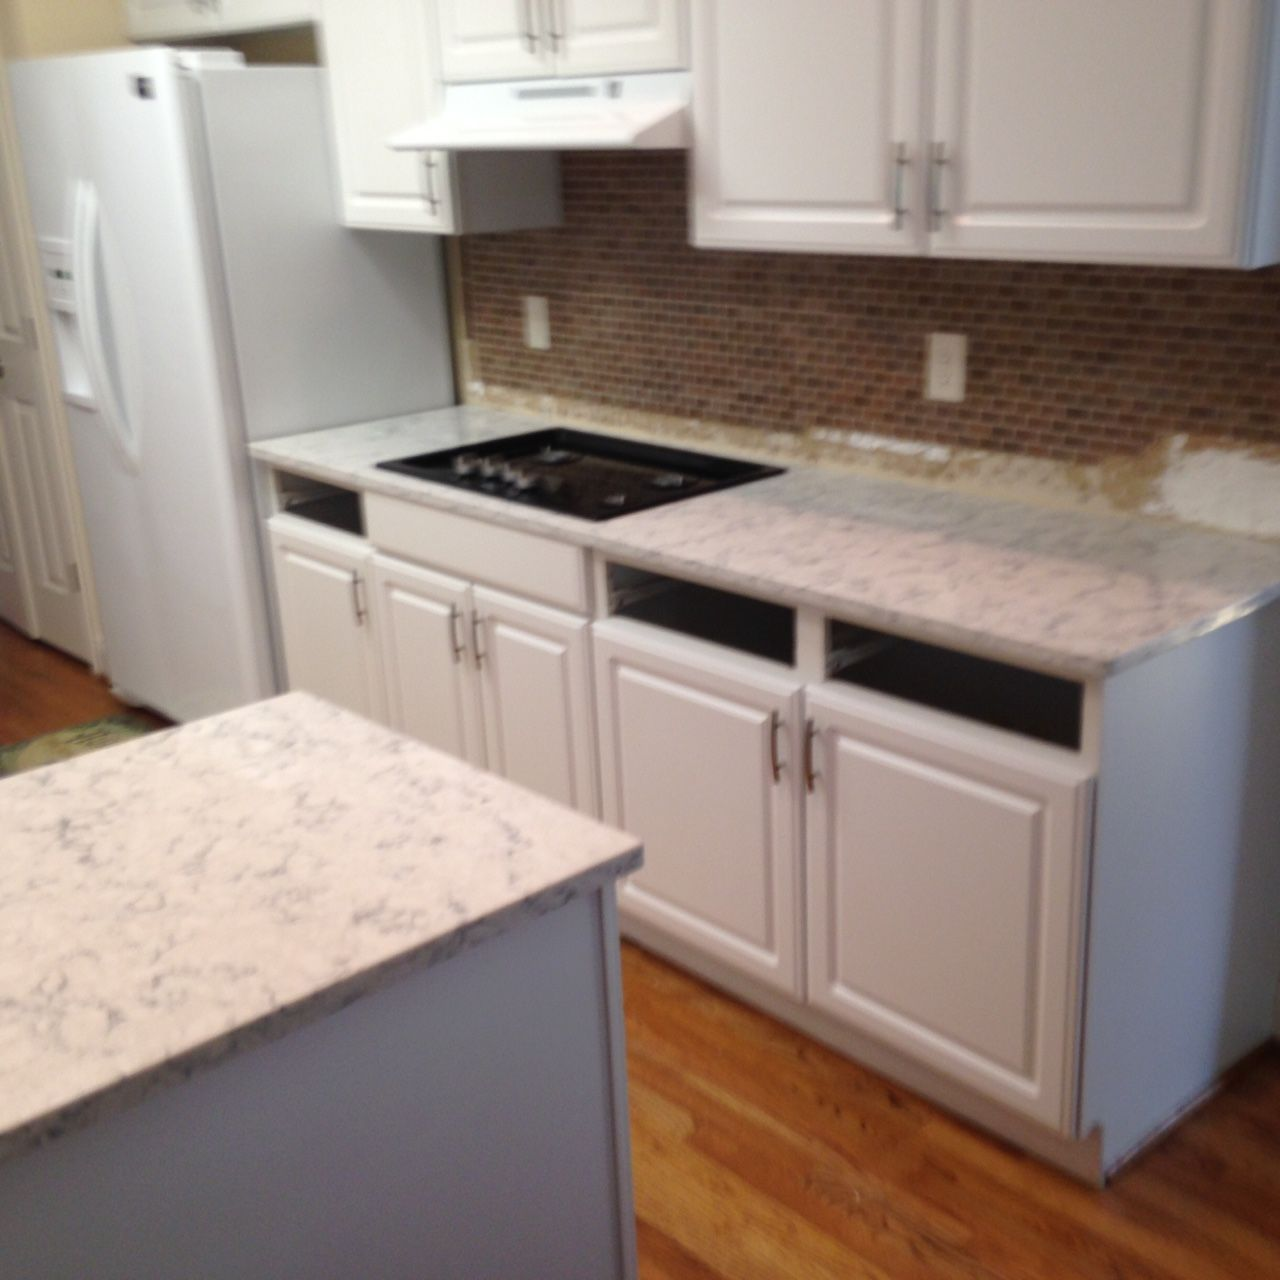 Exceptional Rococo LG Viatera Quartz Kitchen Countertop Install For The Purdy Family.  Knoxvilleu0027s Stone Interiors.